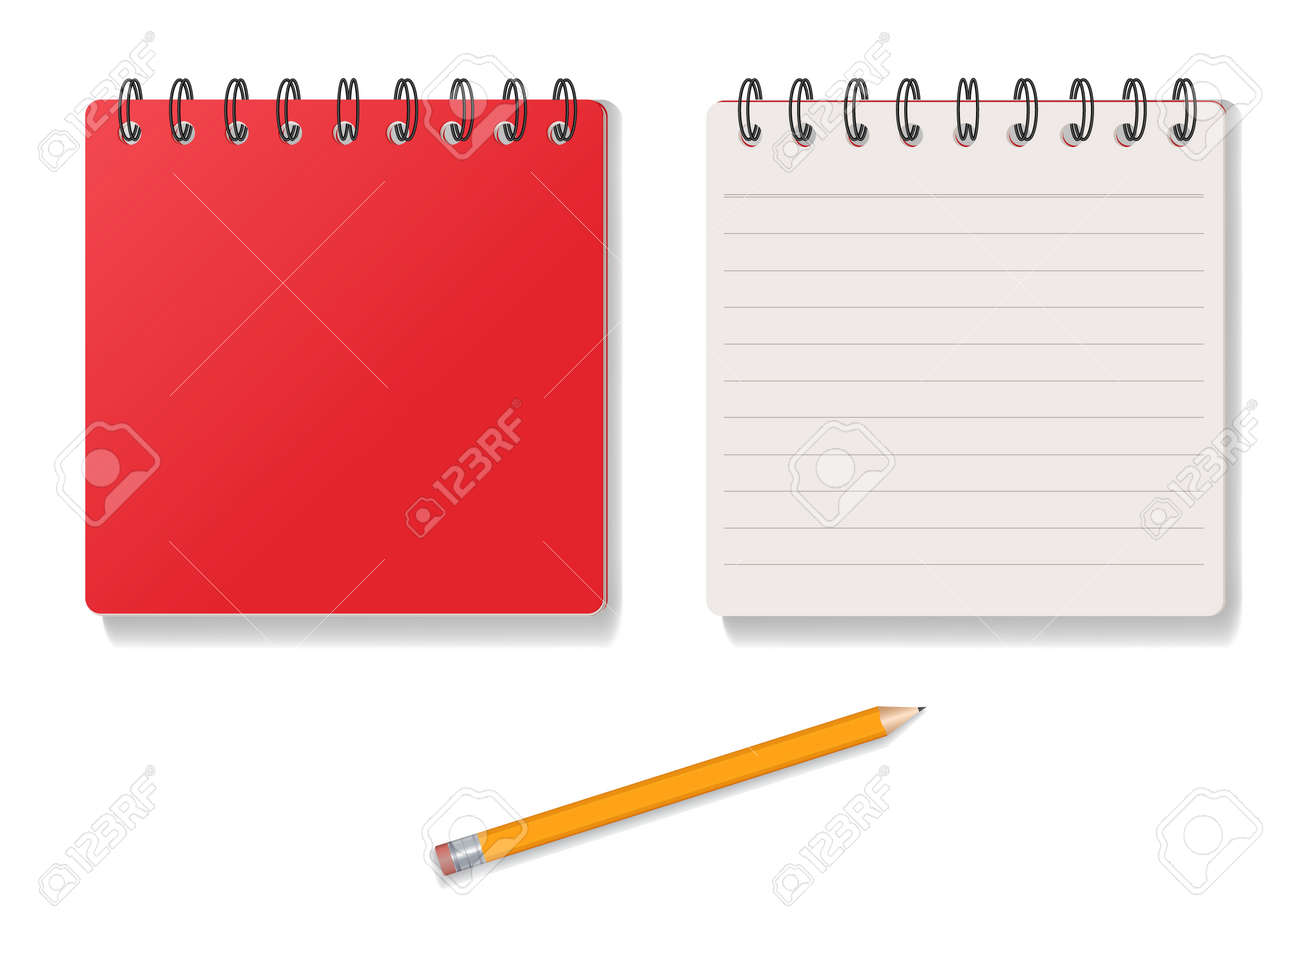 notebook red cover and pencil art vector illustration - 171228682